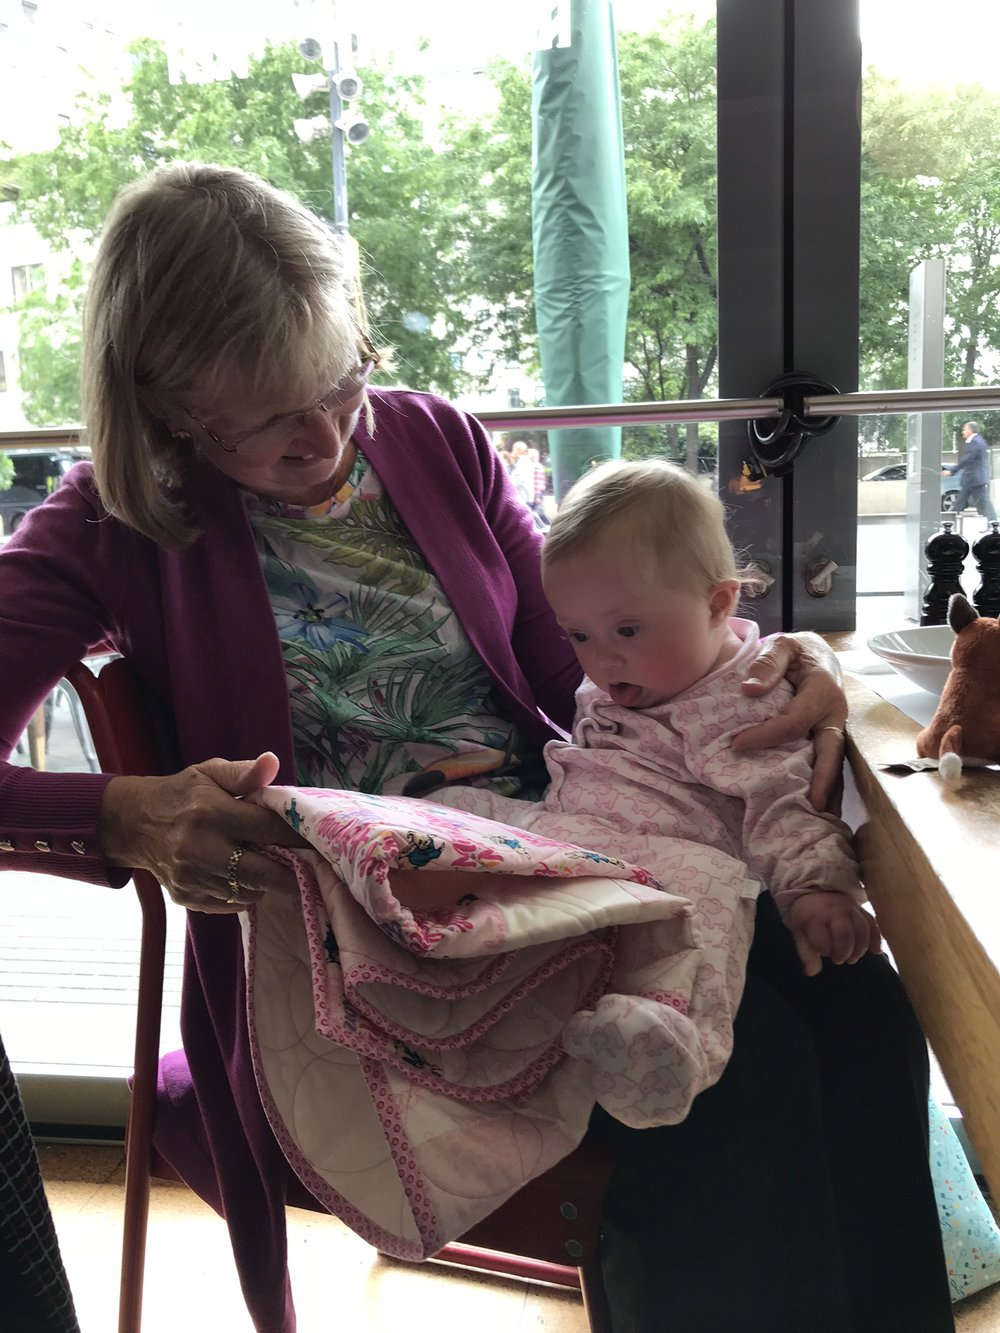 Val and Coraline in June 2018, with the quilt Val made her